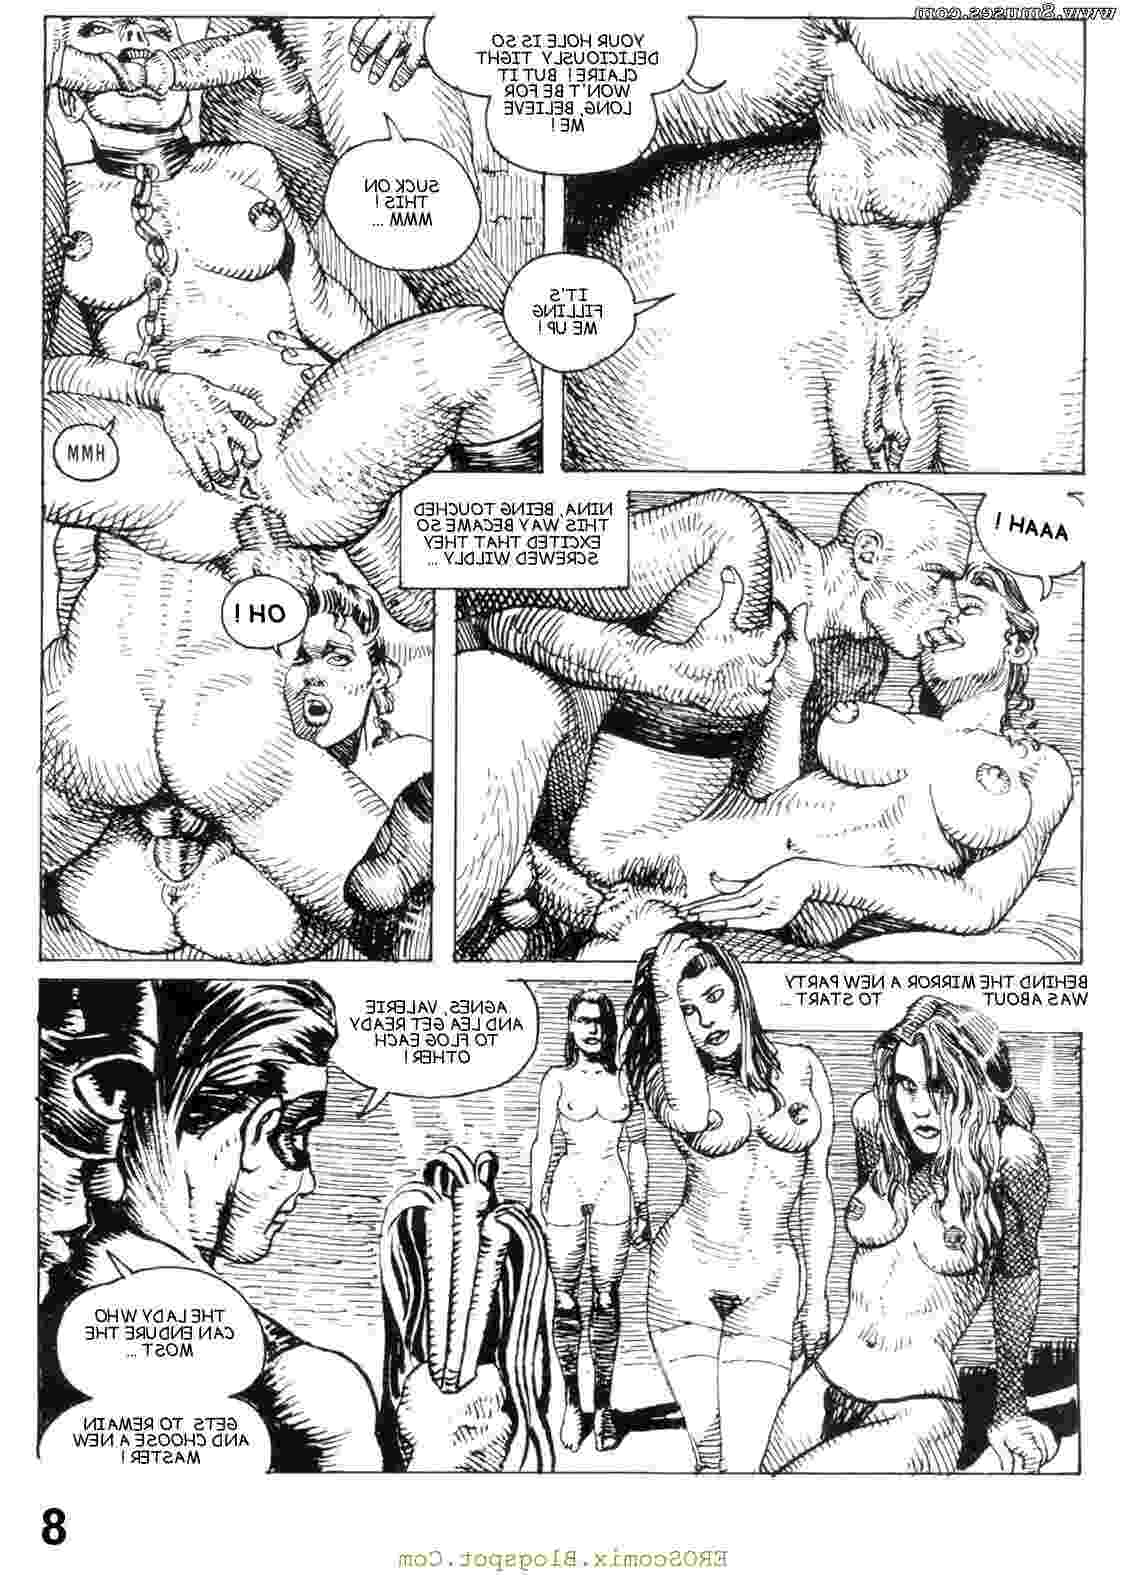 Bruno-Coq-Comics/Secret-Society Secret_Society__8muses_-_Sex_and_Porn_Comics_9.jpg